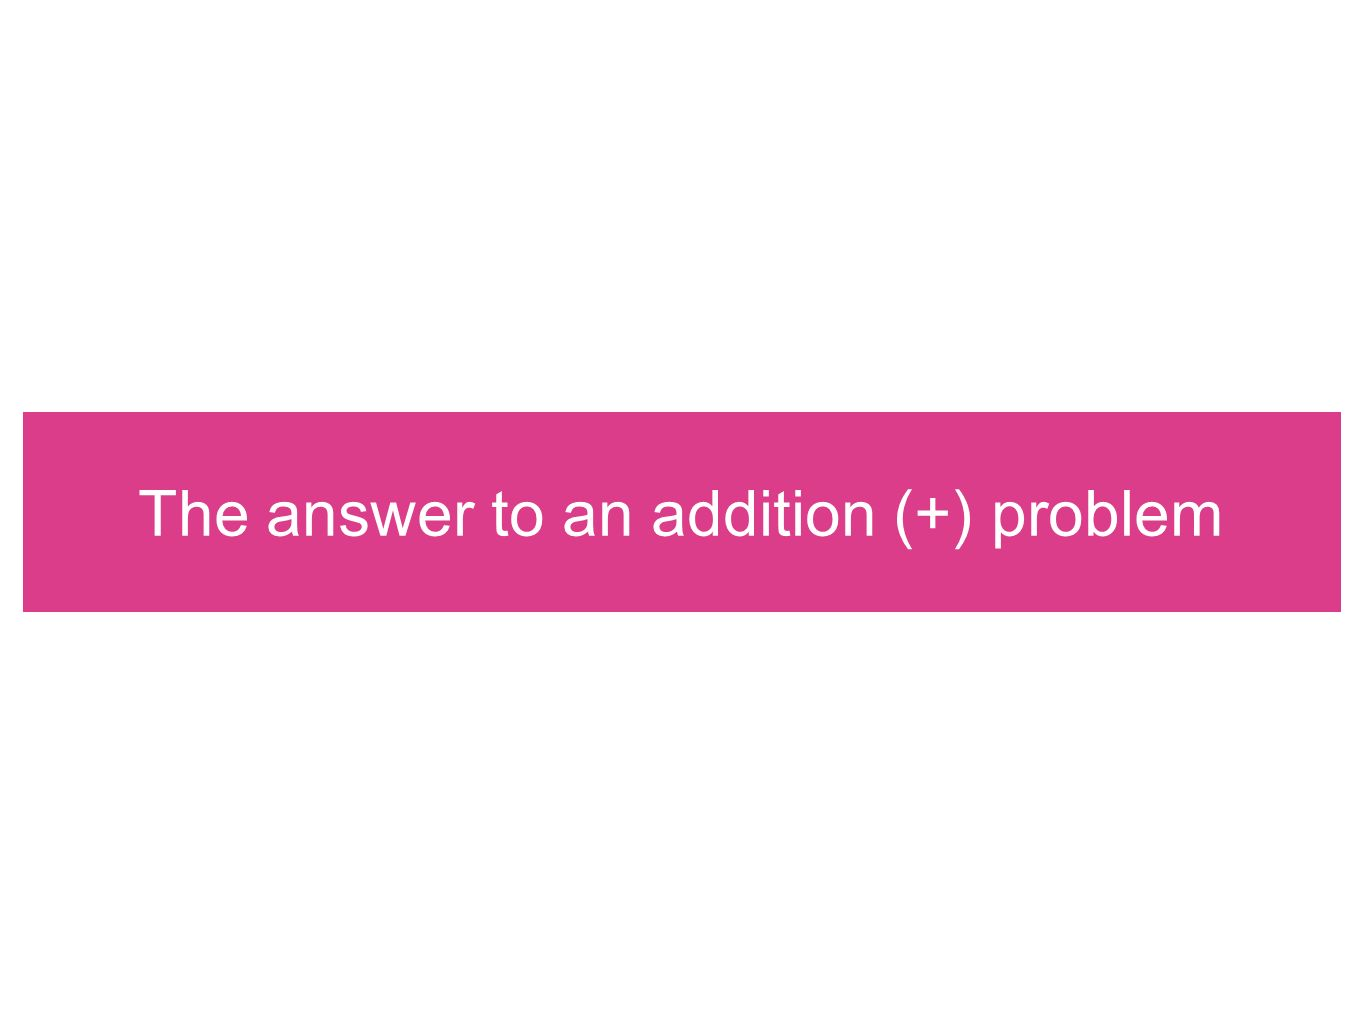 The answer to an addition (+) problem